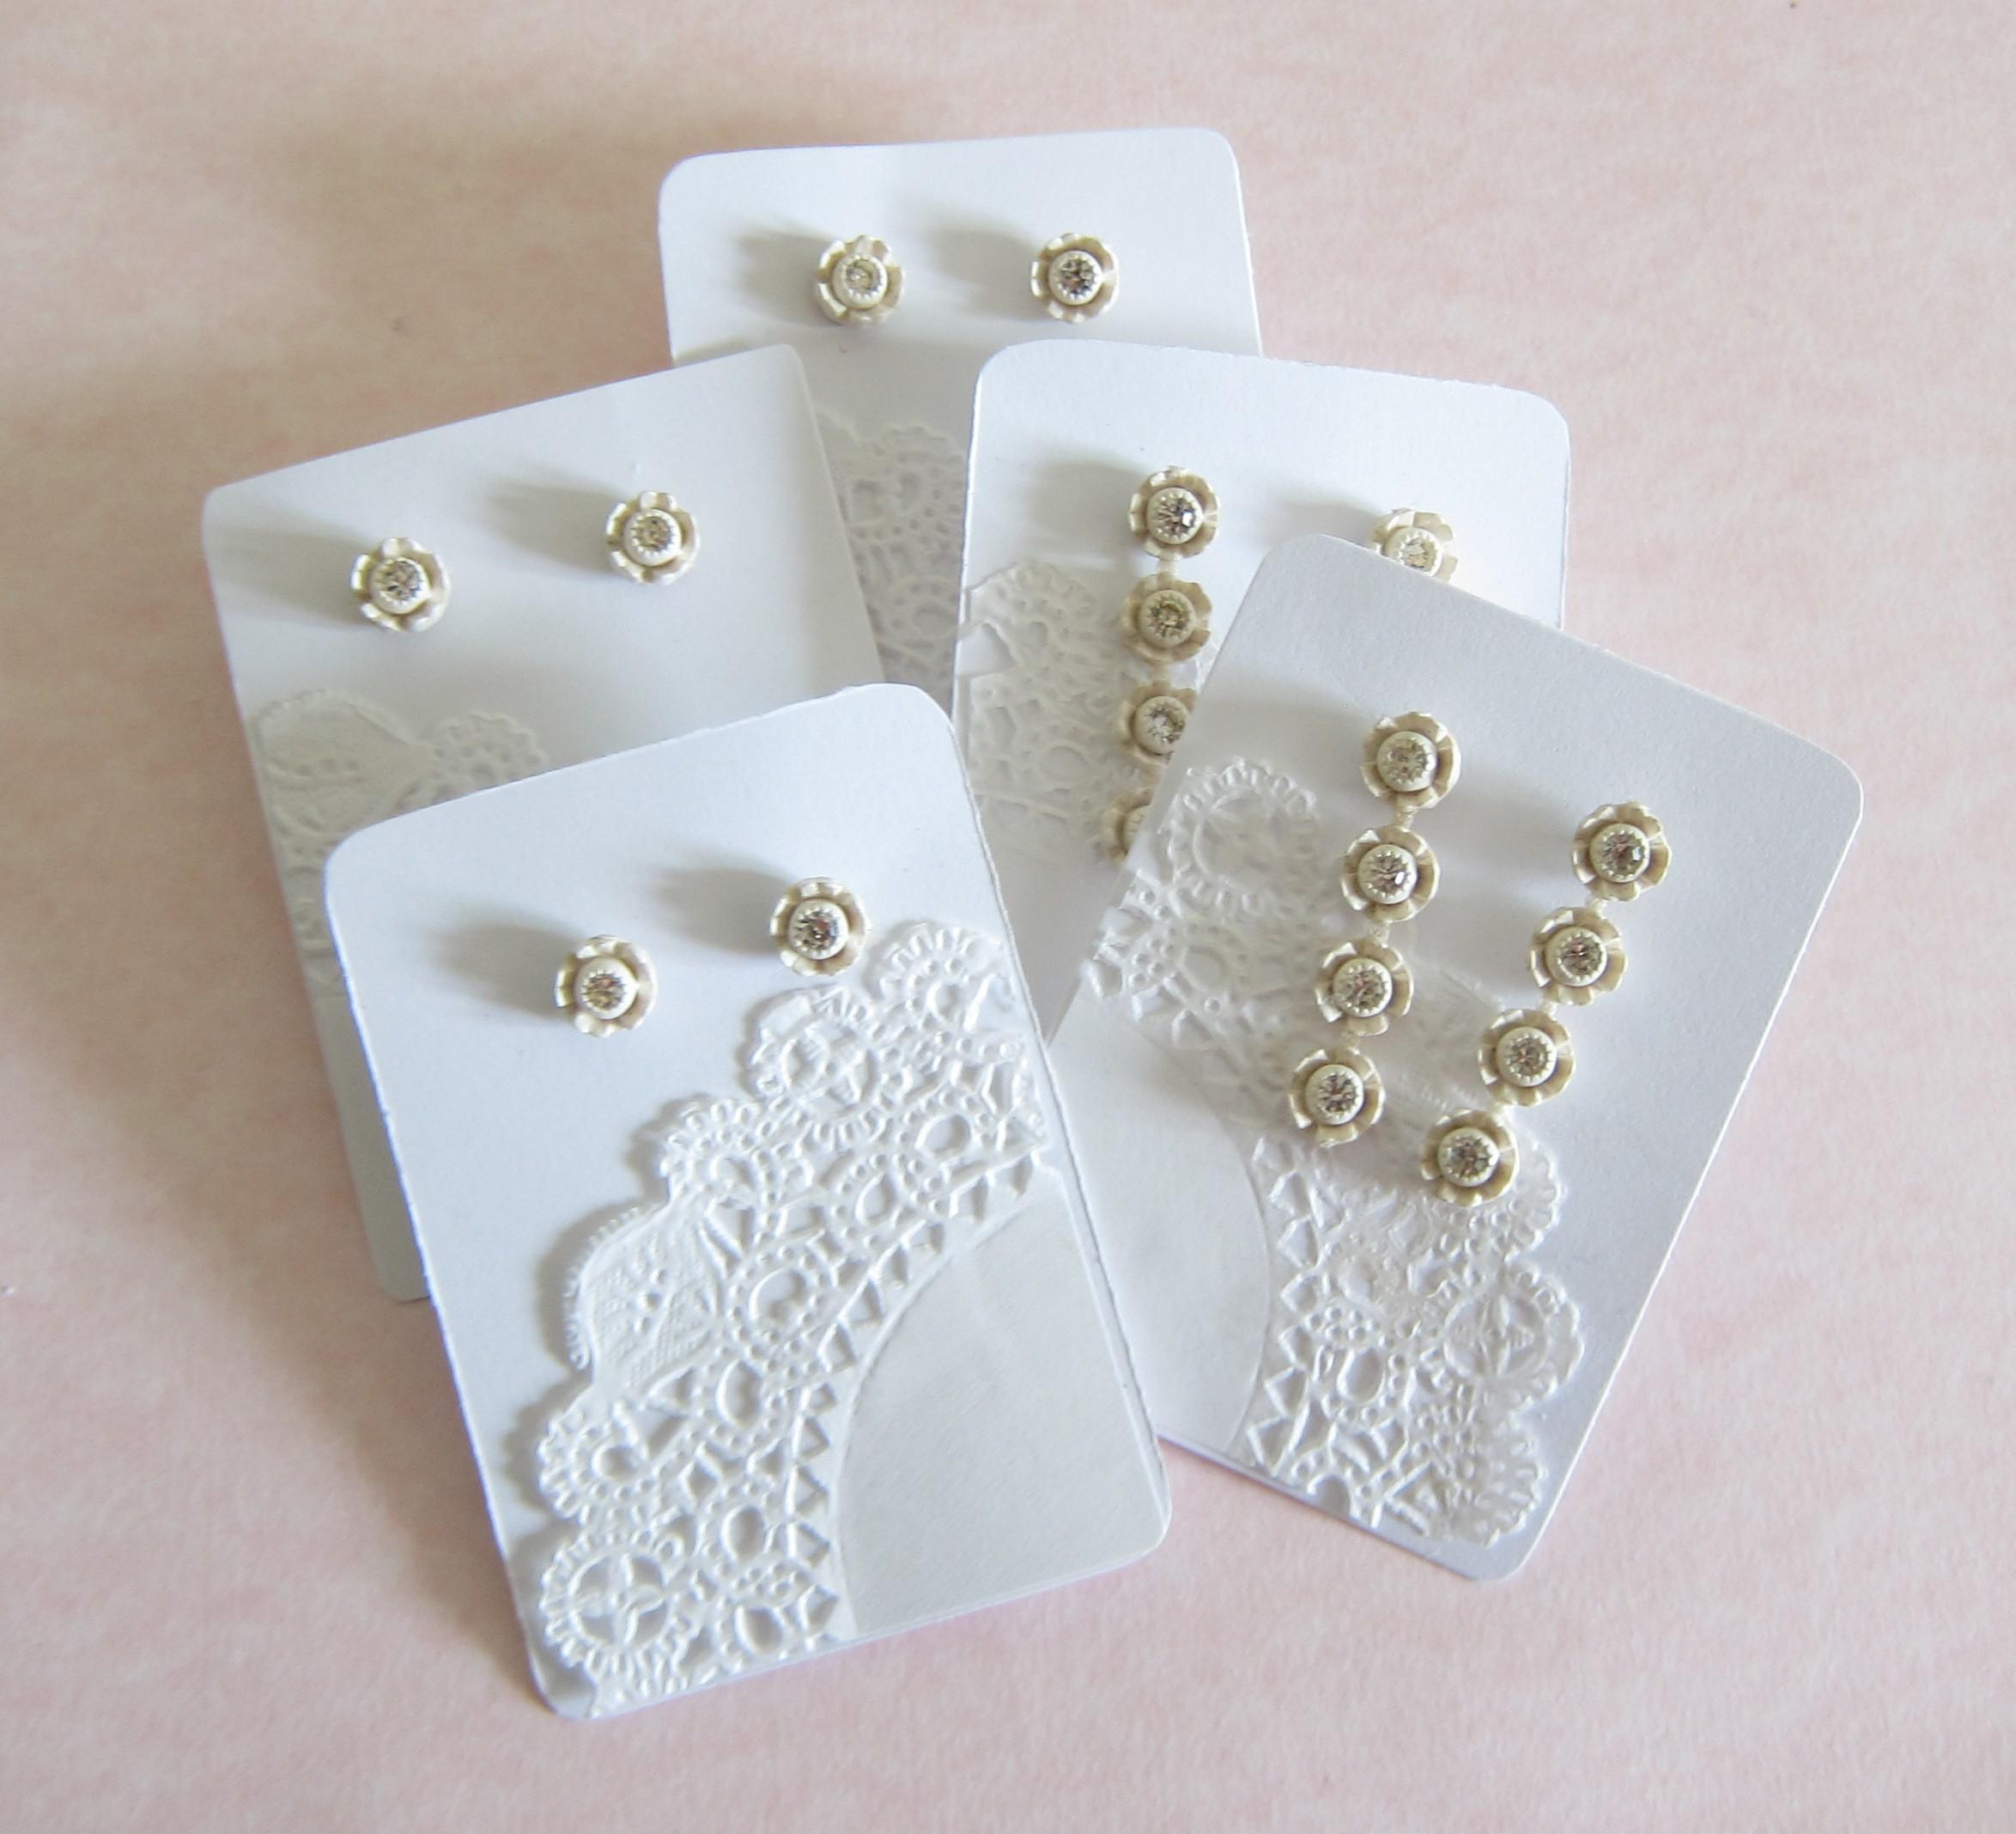 Lace Doily Earring Display Cards Brown Eyed Rose